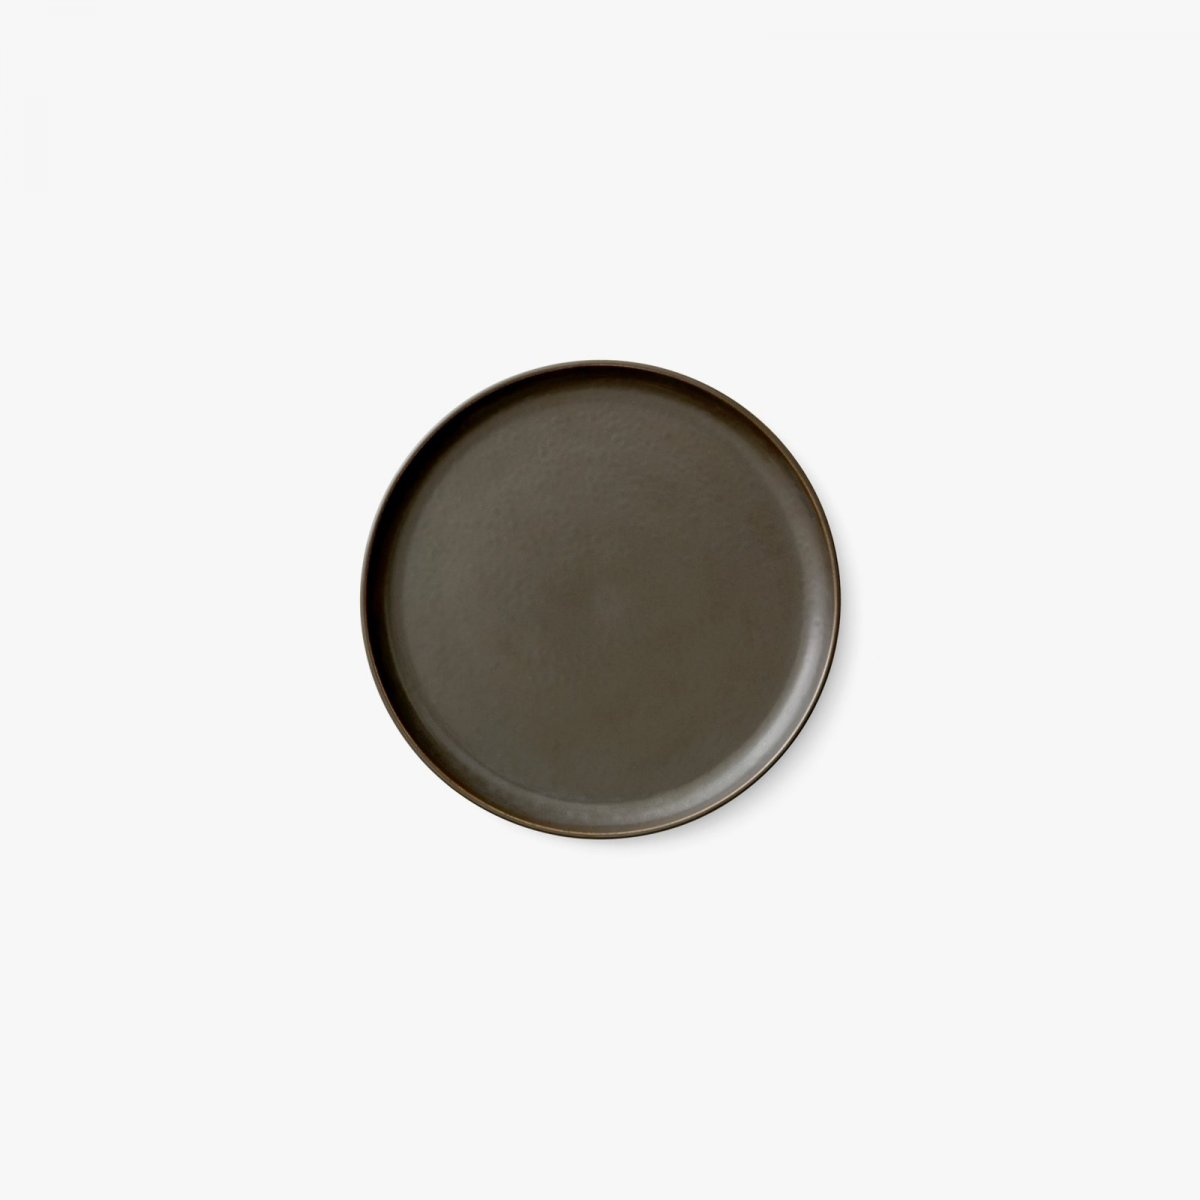 New Norm Lunch Plate, Ø 23 cm, dark glazed.